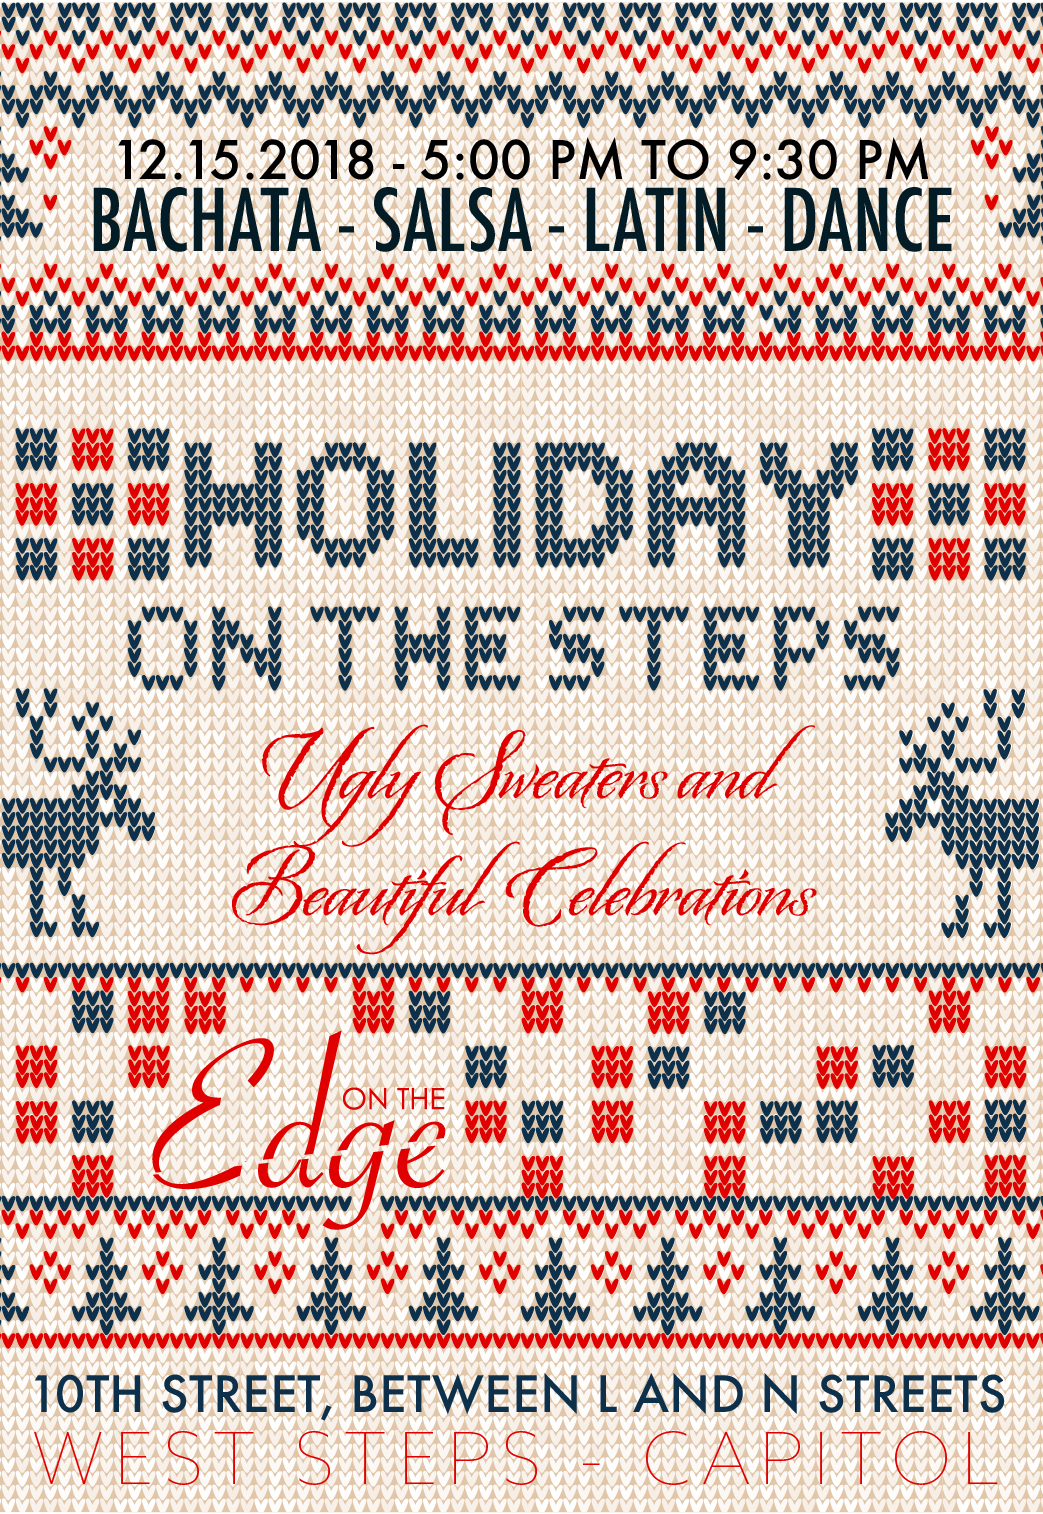 holiday on the steps - December 15, 2018